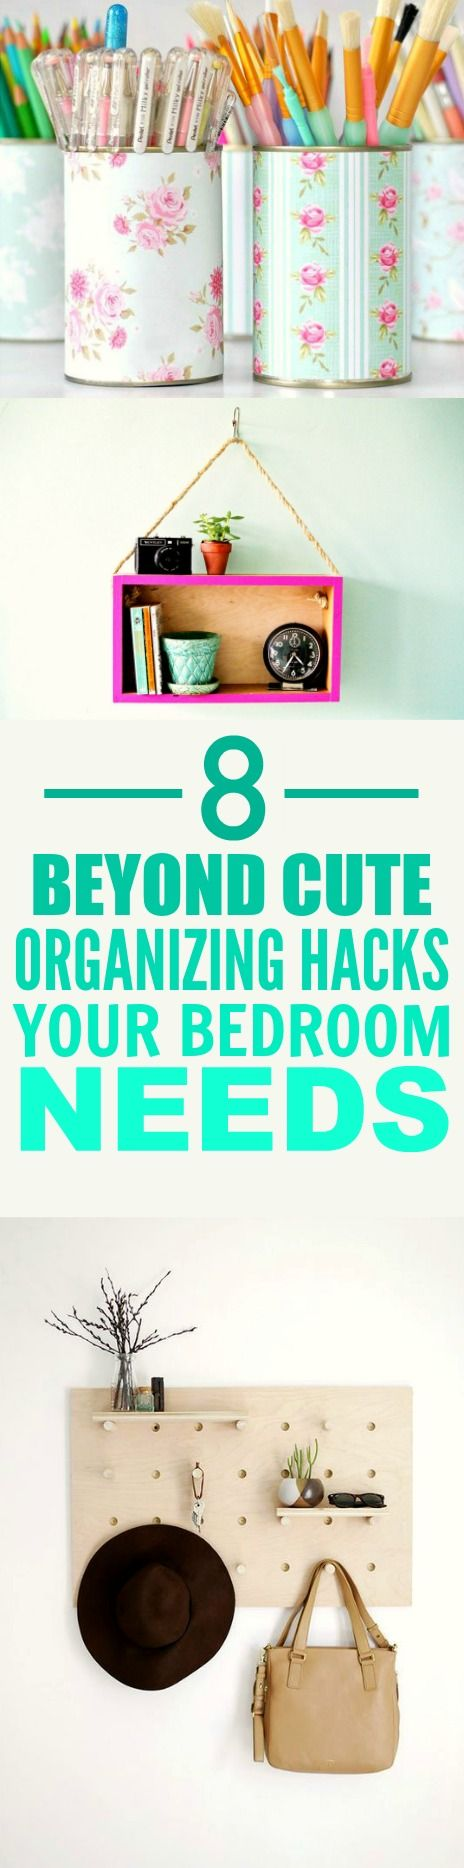 These 8 super cute bedroom organizing hacks and tips are THE BEST! I'm so glad I found this AMAZING post! Now I have some ideas on how to organize my room an make it look pretty! Definitely pinning for later!